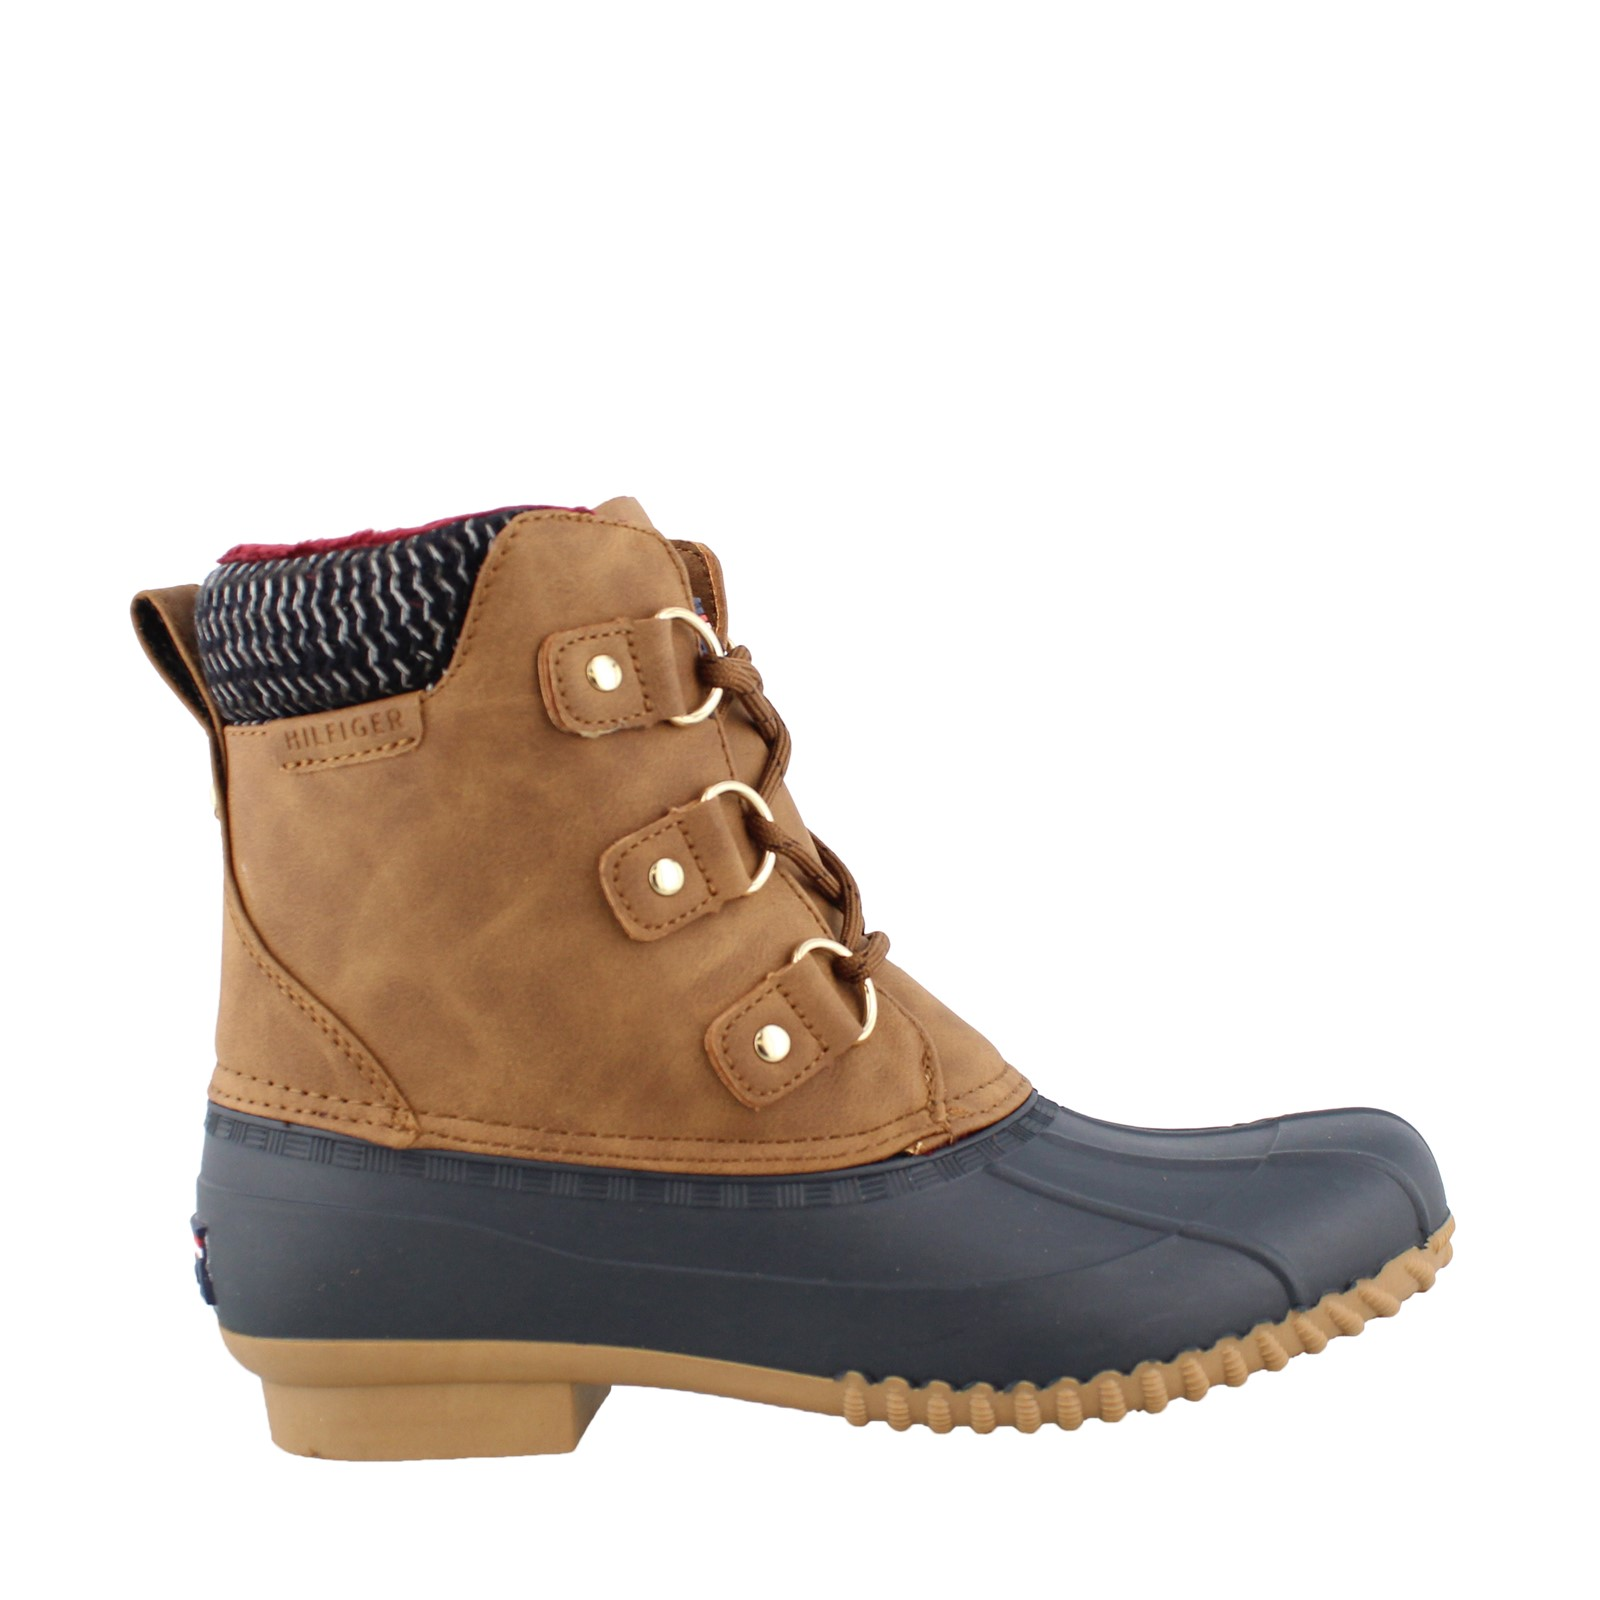 Women's Tommy Hilfiger, Roza3 Boots